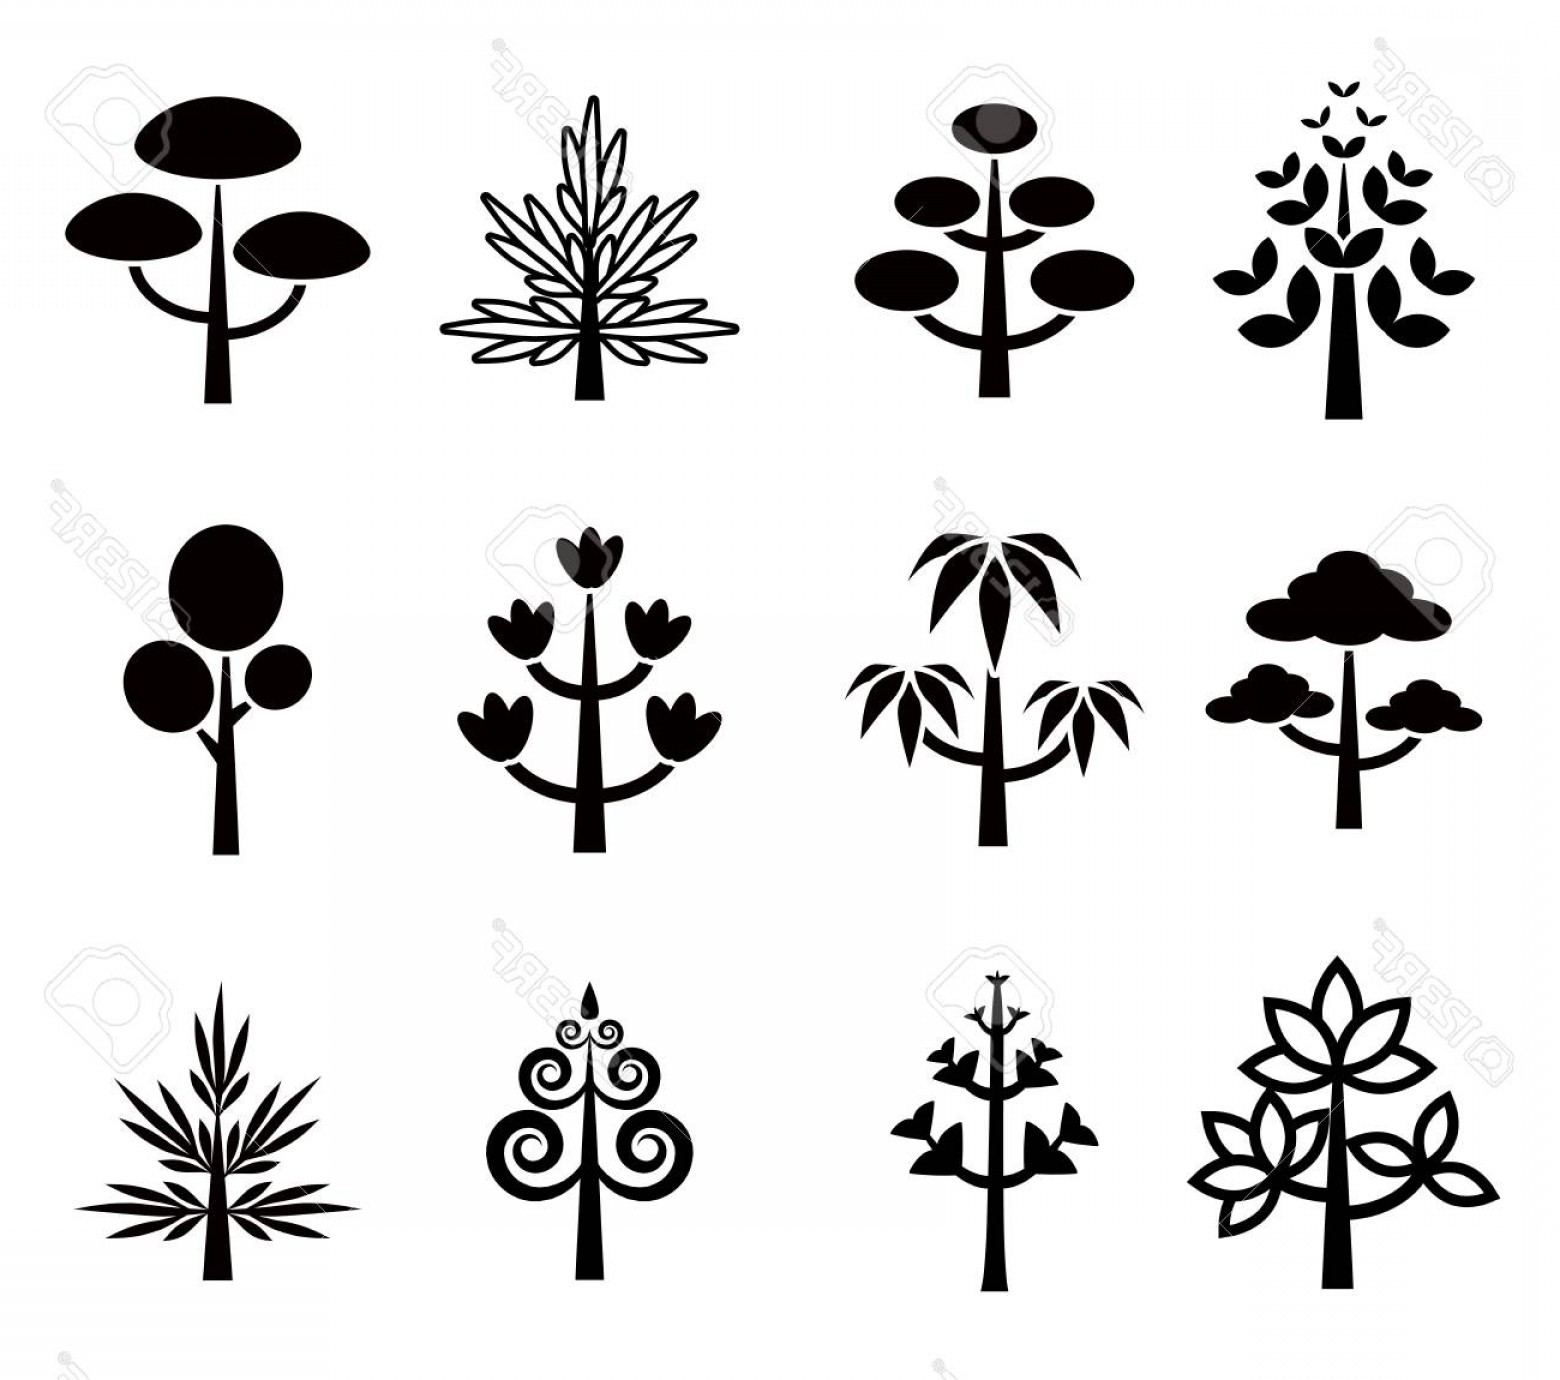 Contoon Free Black Vector Tree: Photostock Vector Tree Vector Icon Set Collection Black And White Cute Plant Cartoon